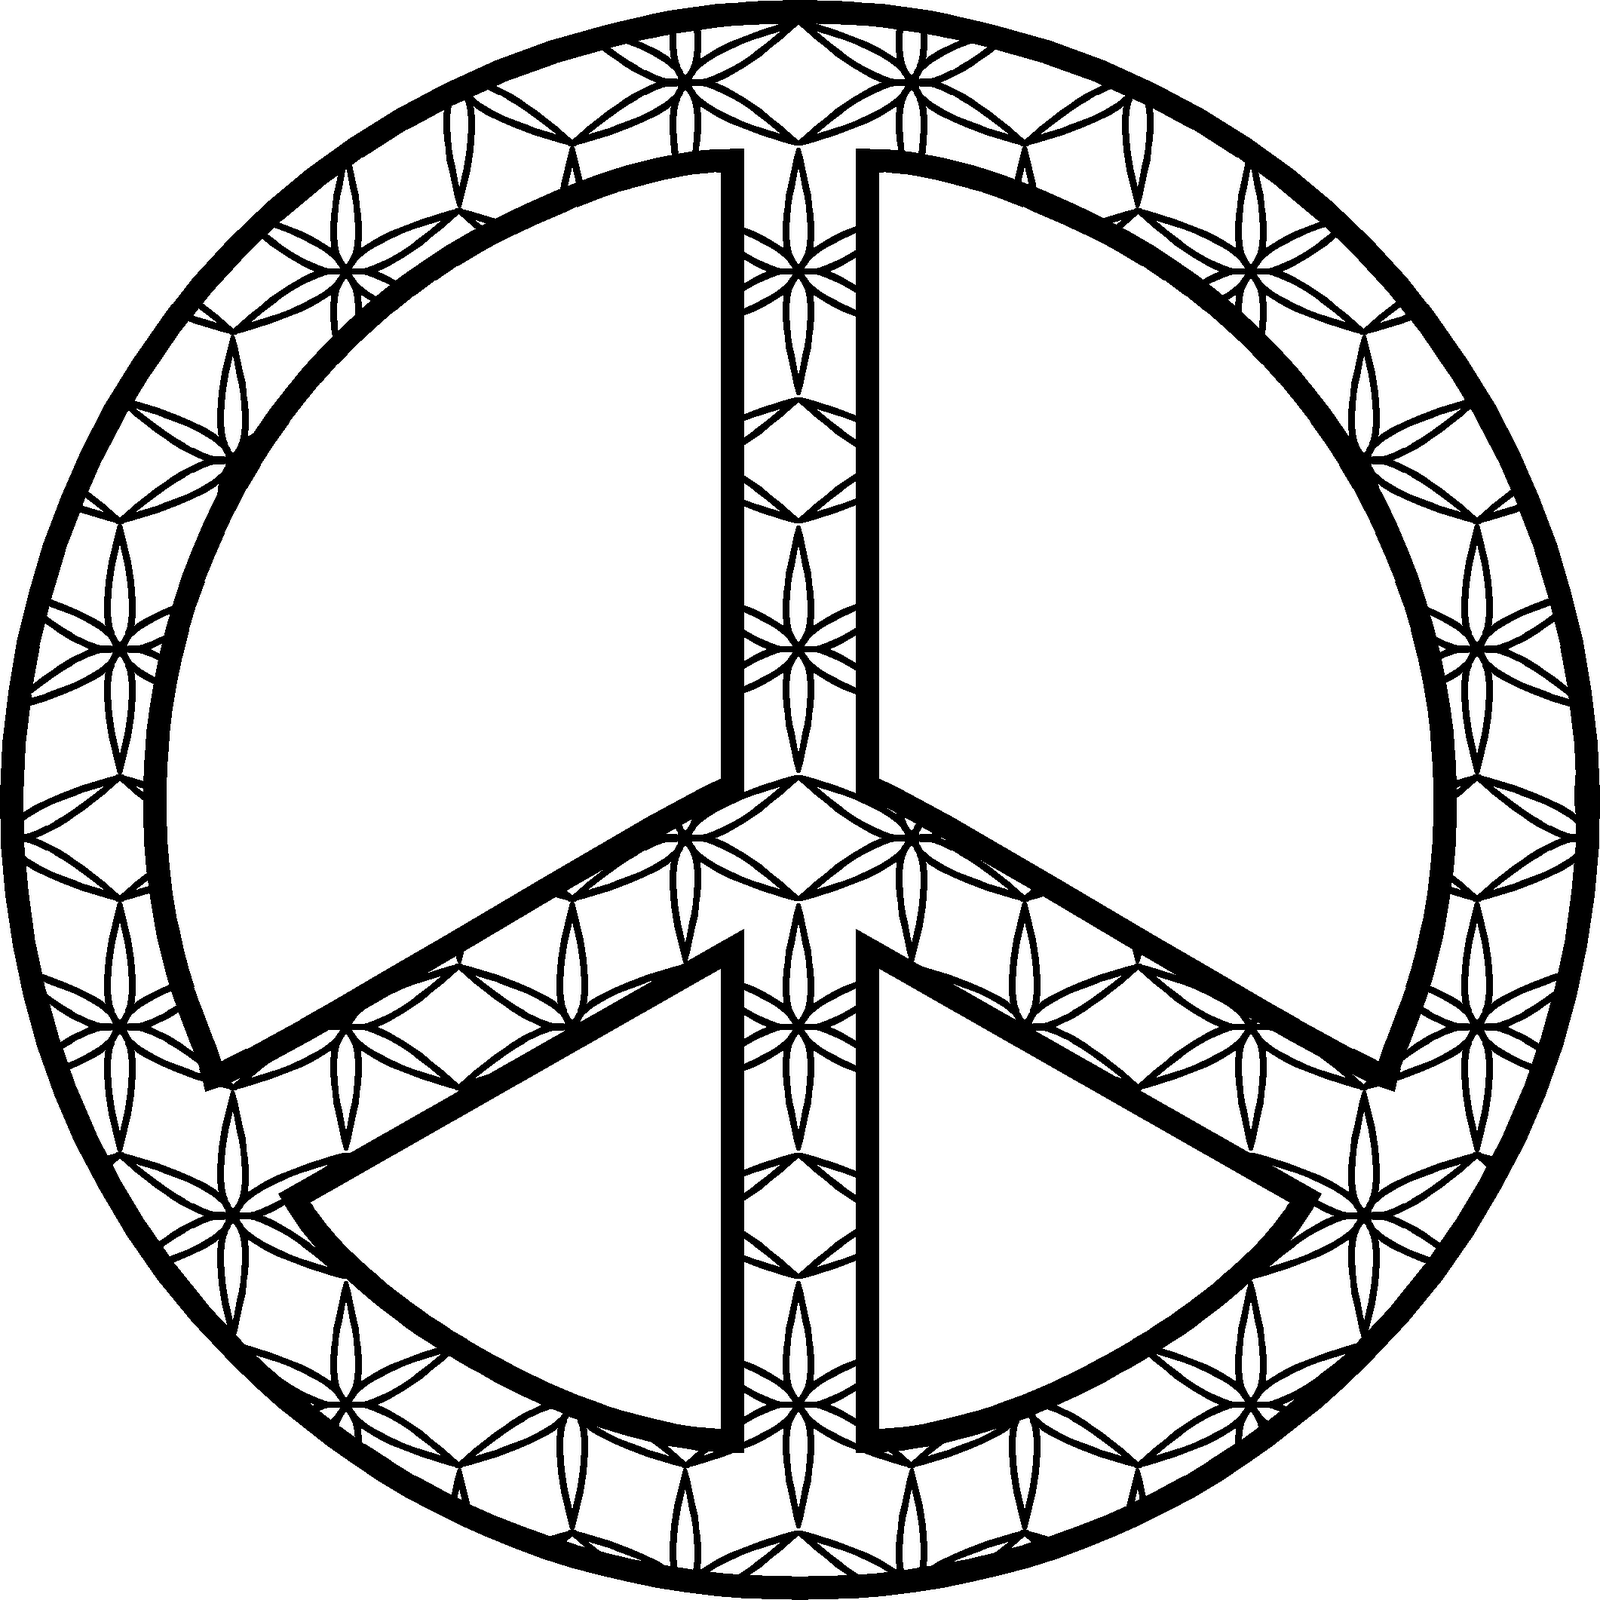 Free Symbol Of Peace, Download Free Clip Art, Free Clip